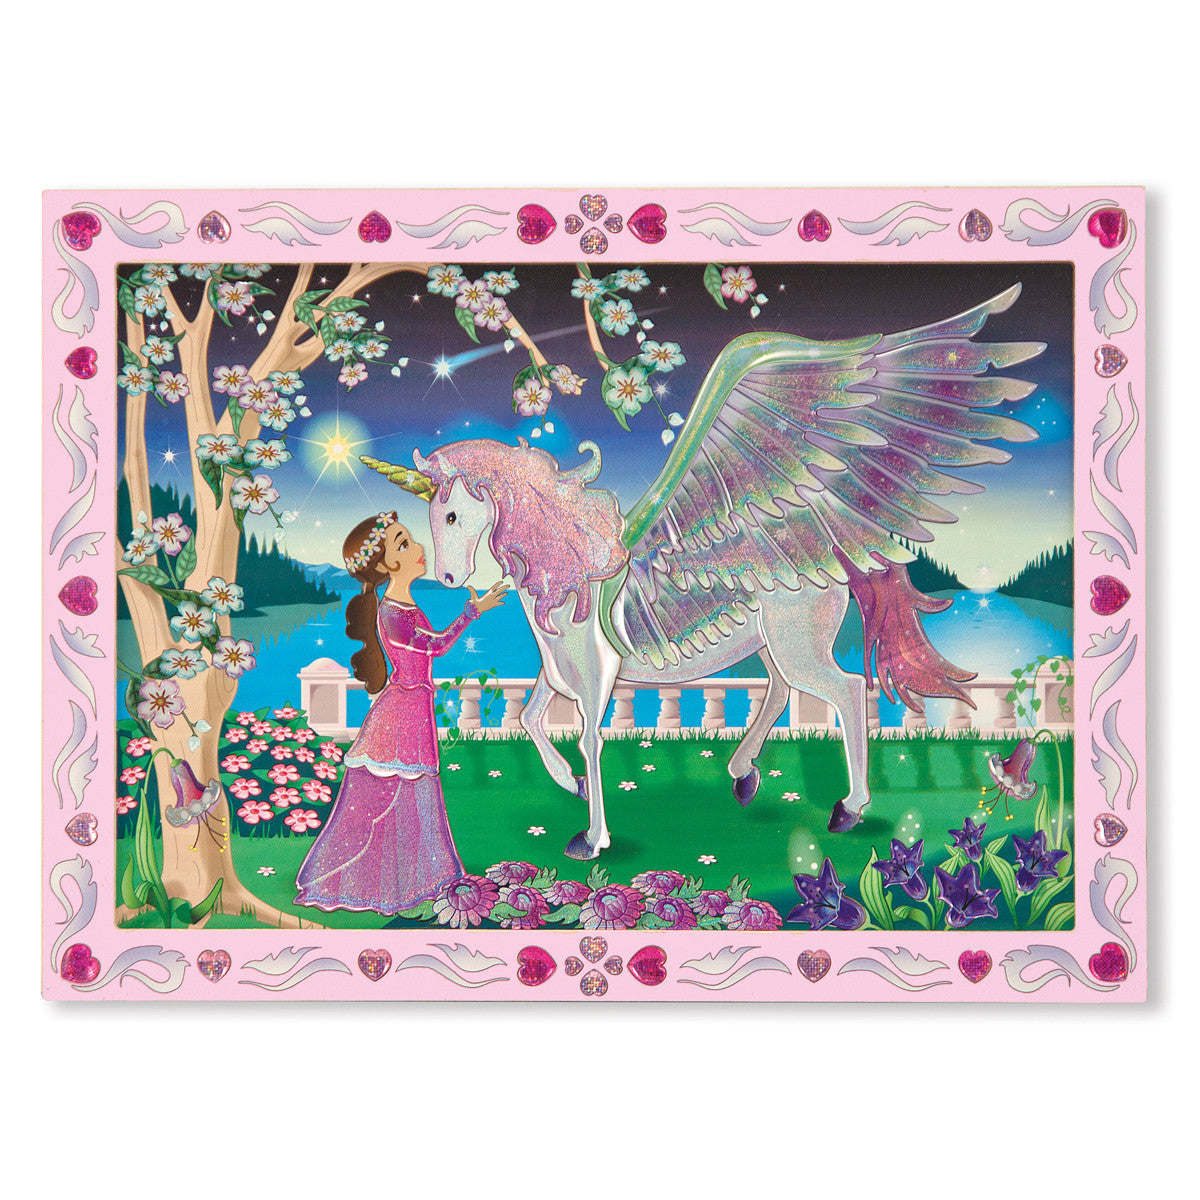 Mystical Unicorn - Peel & Press Sticker by Number